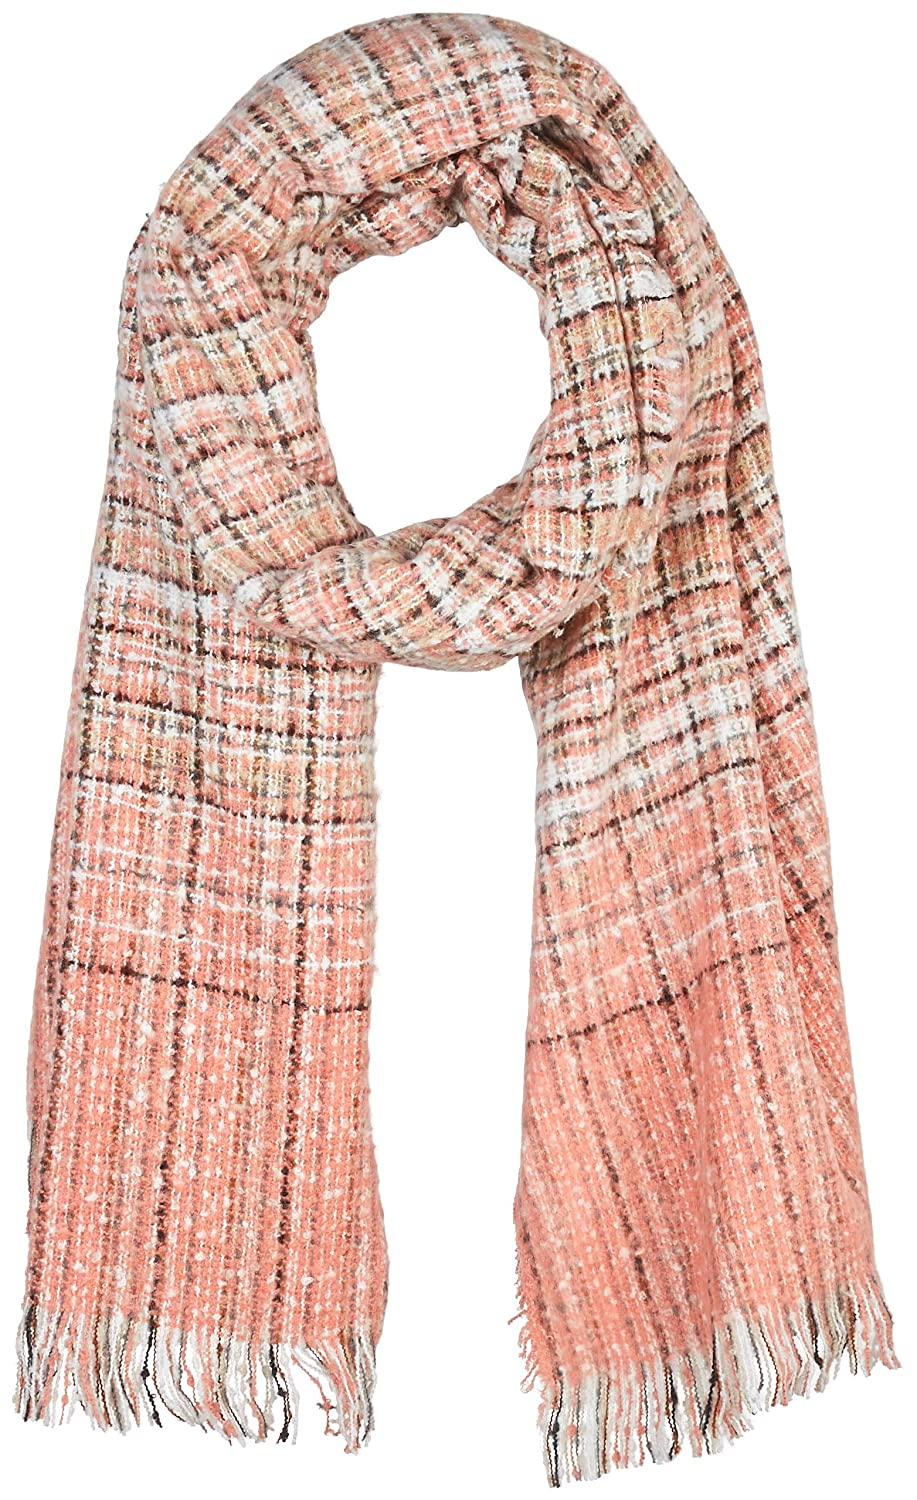 color9 Beautiful Nomad Pashmina Shawl Wrap Scarf in Solid and Plaid Pattern